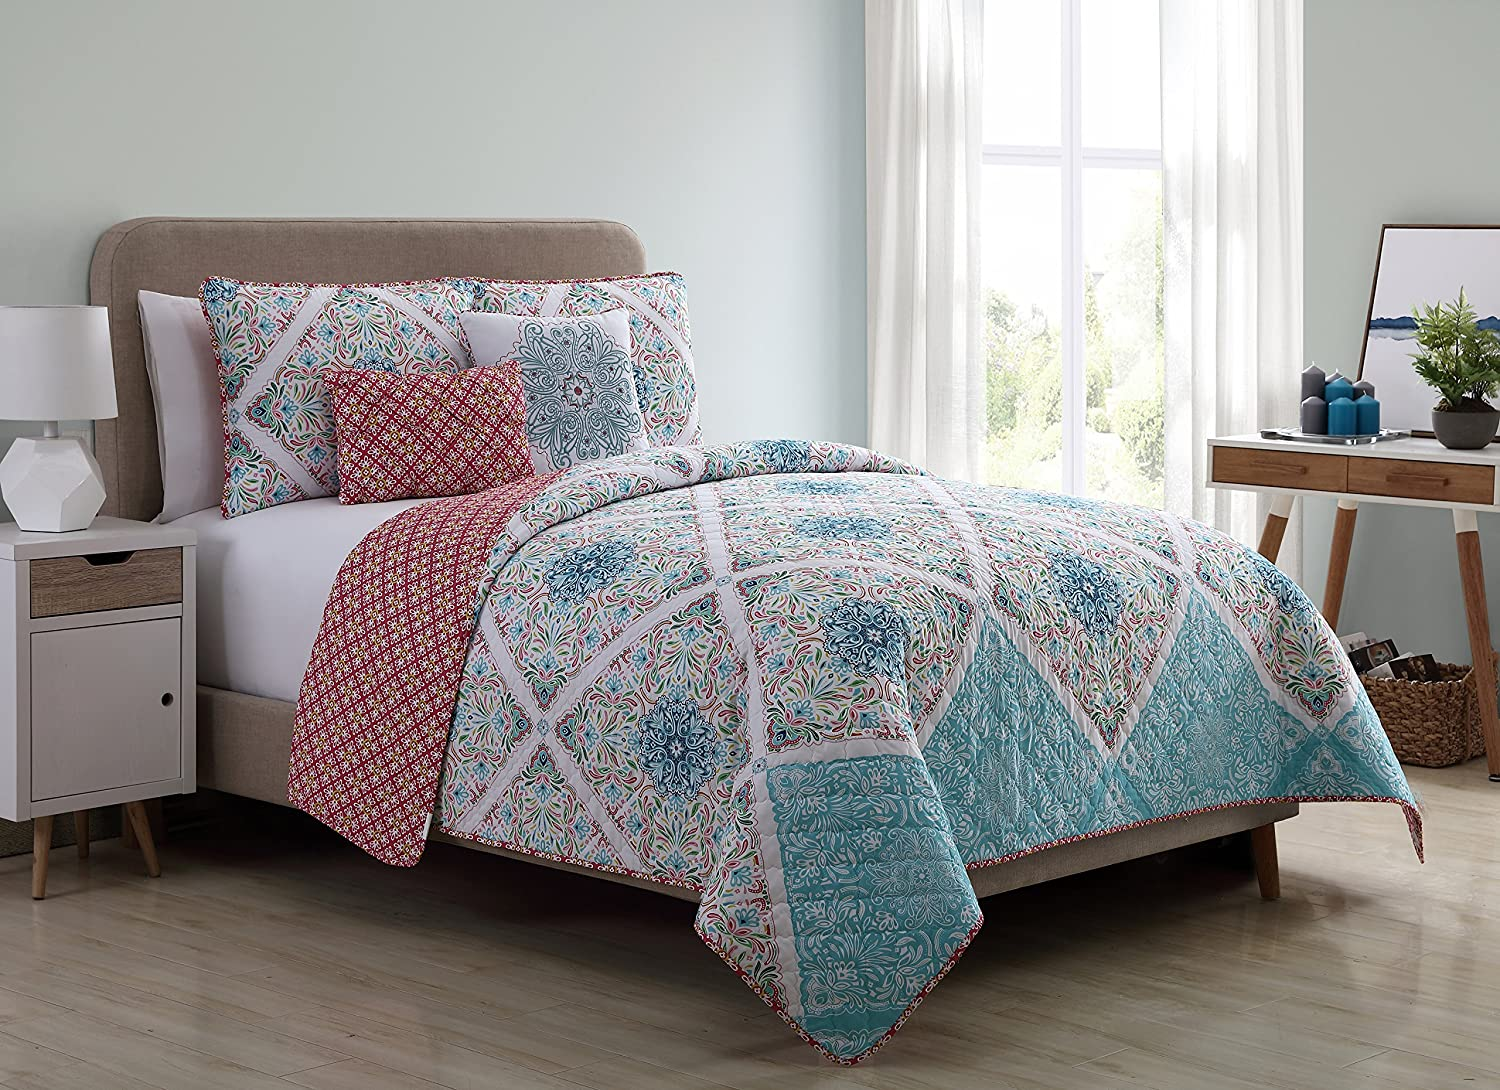 5 Piece Reversible Quilt Cover Set